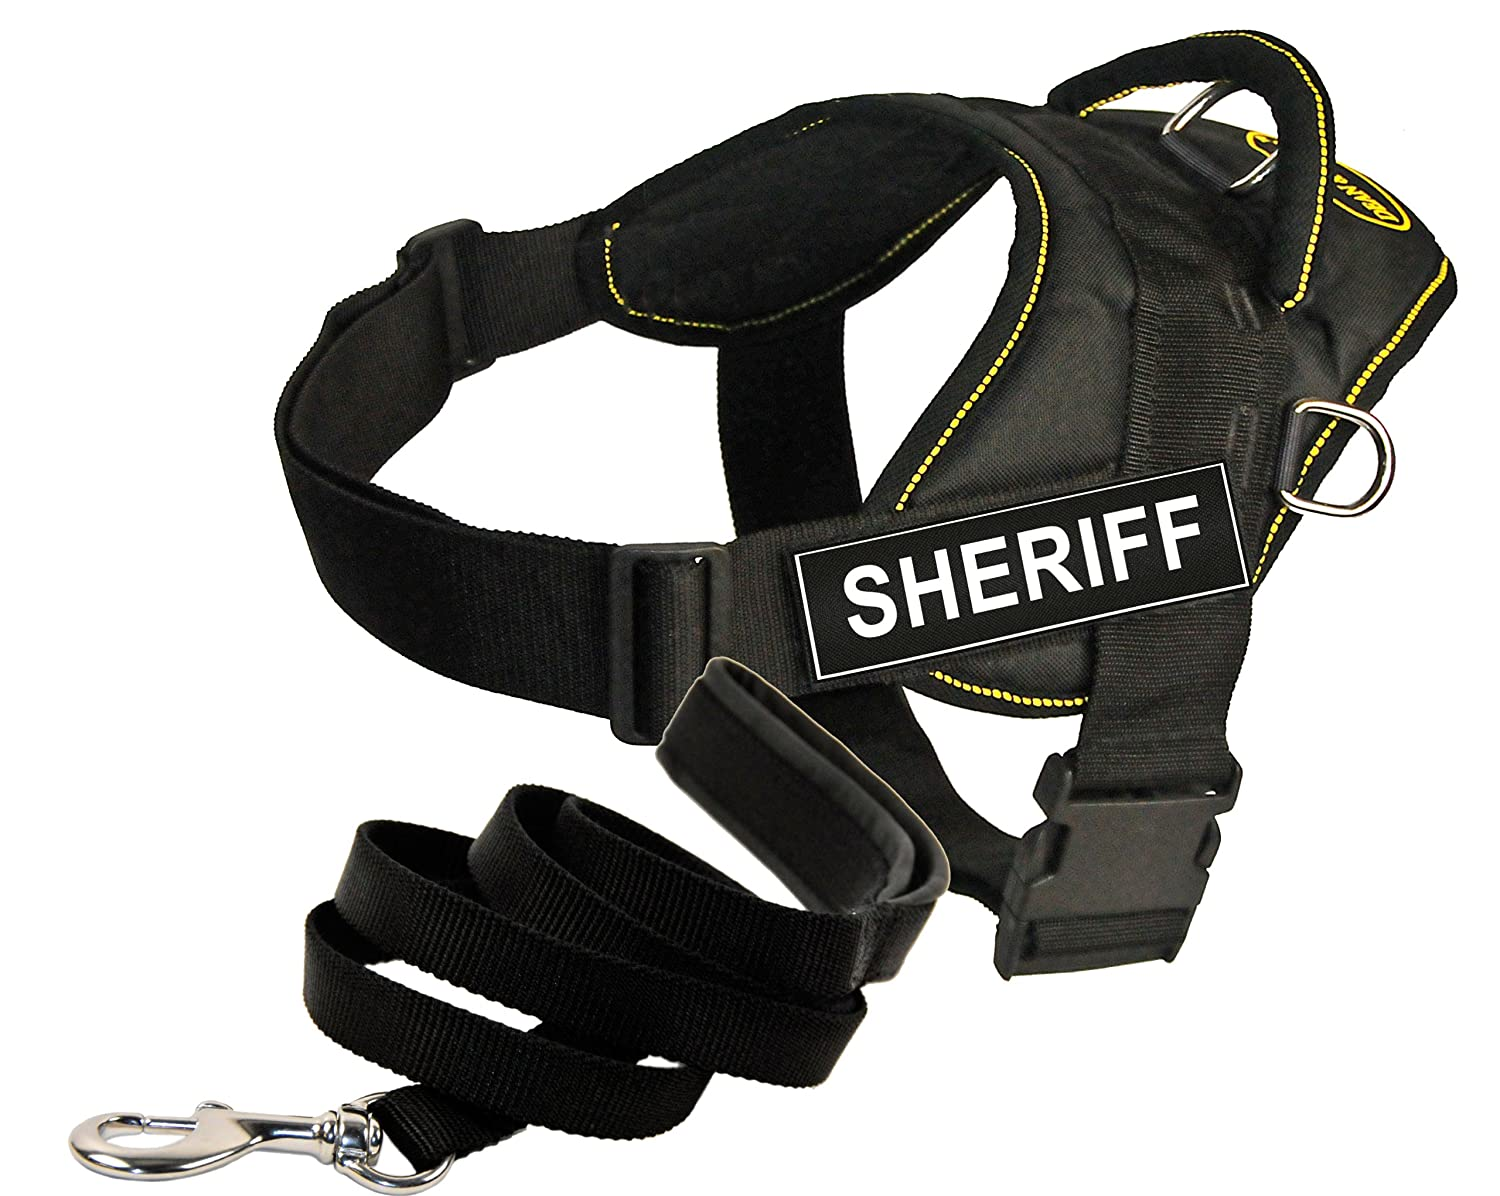 Dean and Tyler Bundle One DT Fun Works  Harness, Sheriff, Yellow Trim, Medium (28  34 ) + One Padded Puppy  Leash, 6 FT Stainless Snap Black